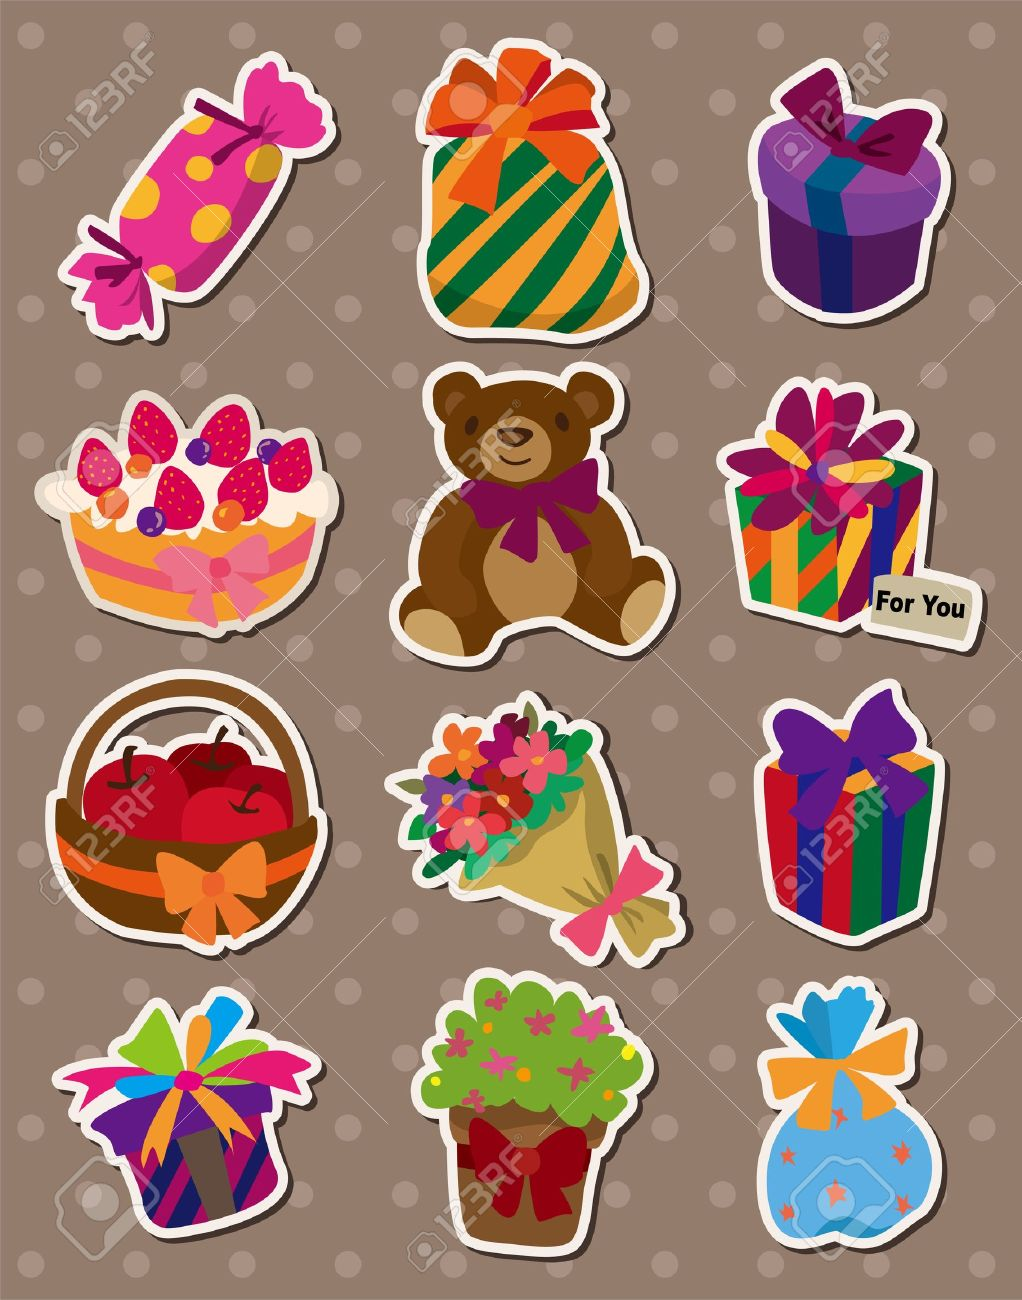 stickers for birthday presents ; 13056732-cartoon-gift-stickers